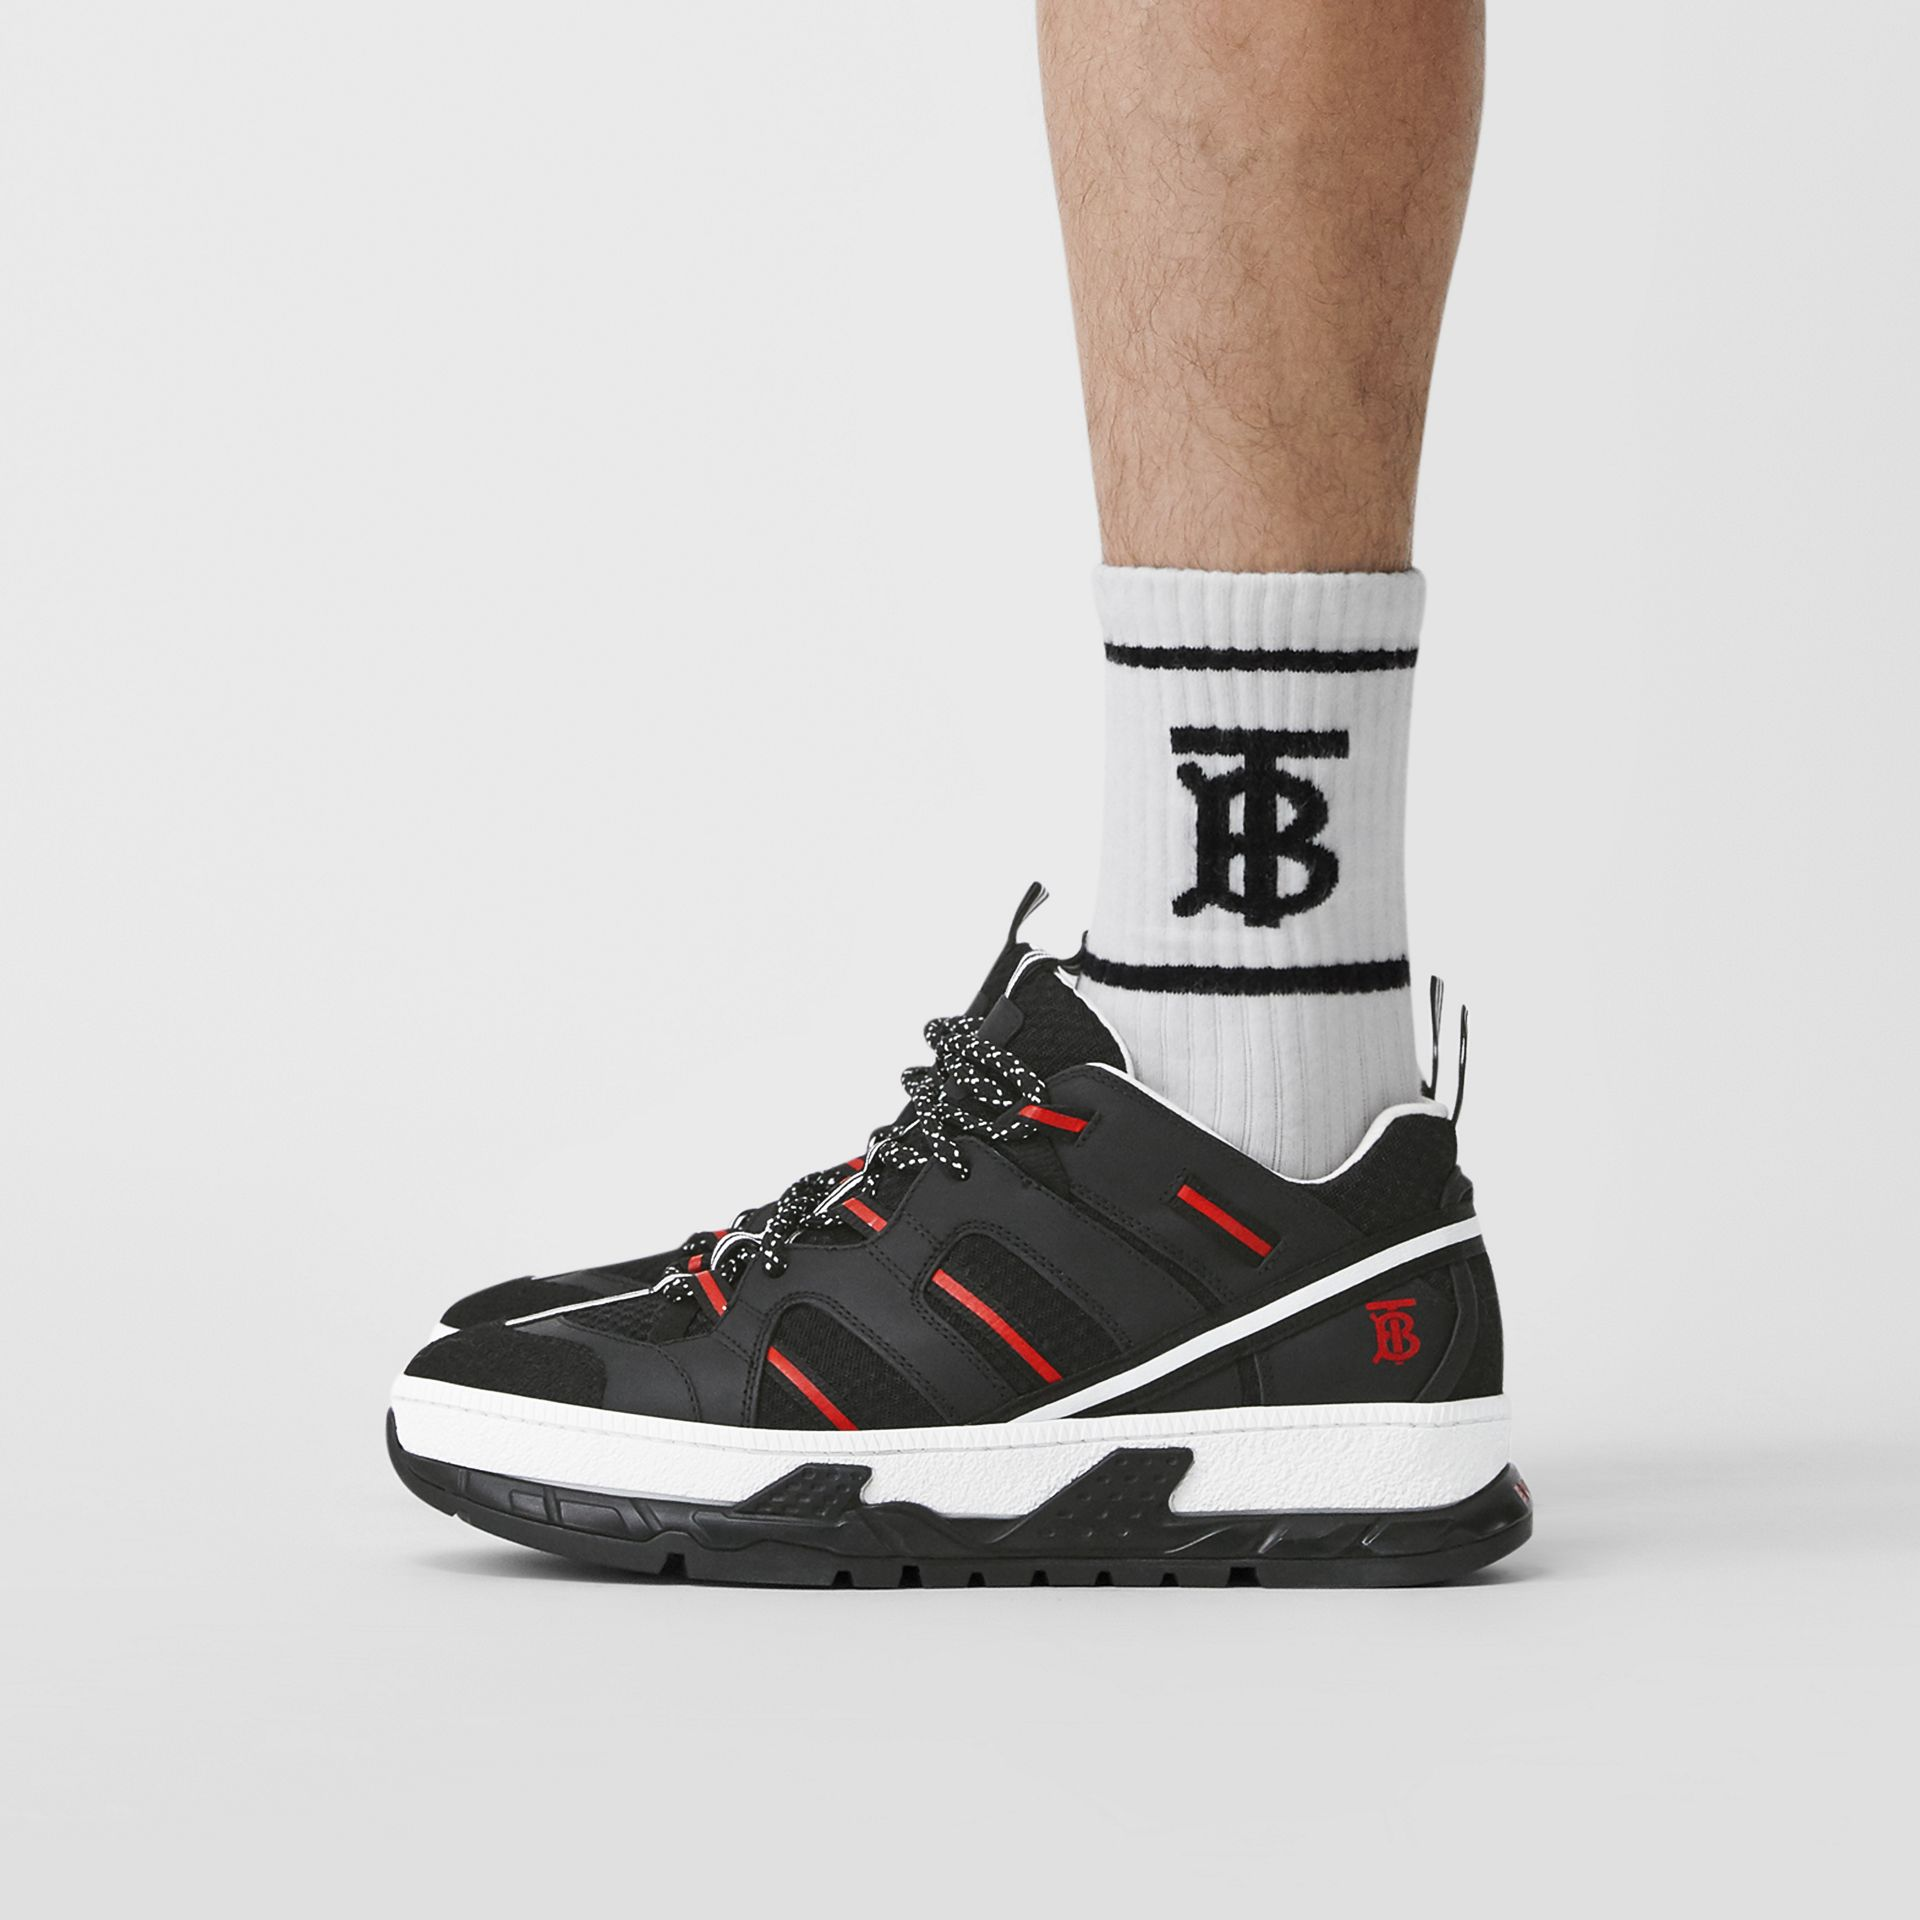 Mesh and Nubuck Union Sneakers in Black/red - Men | Burberry - gallery image 2